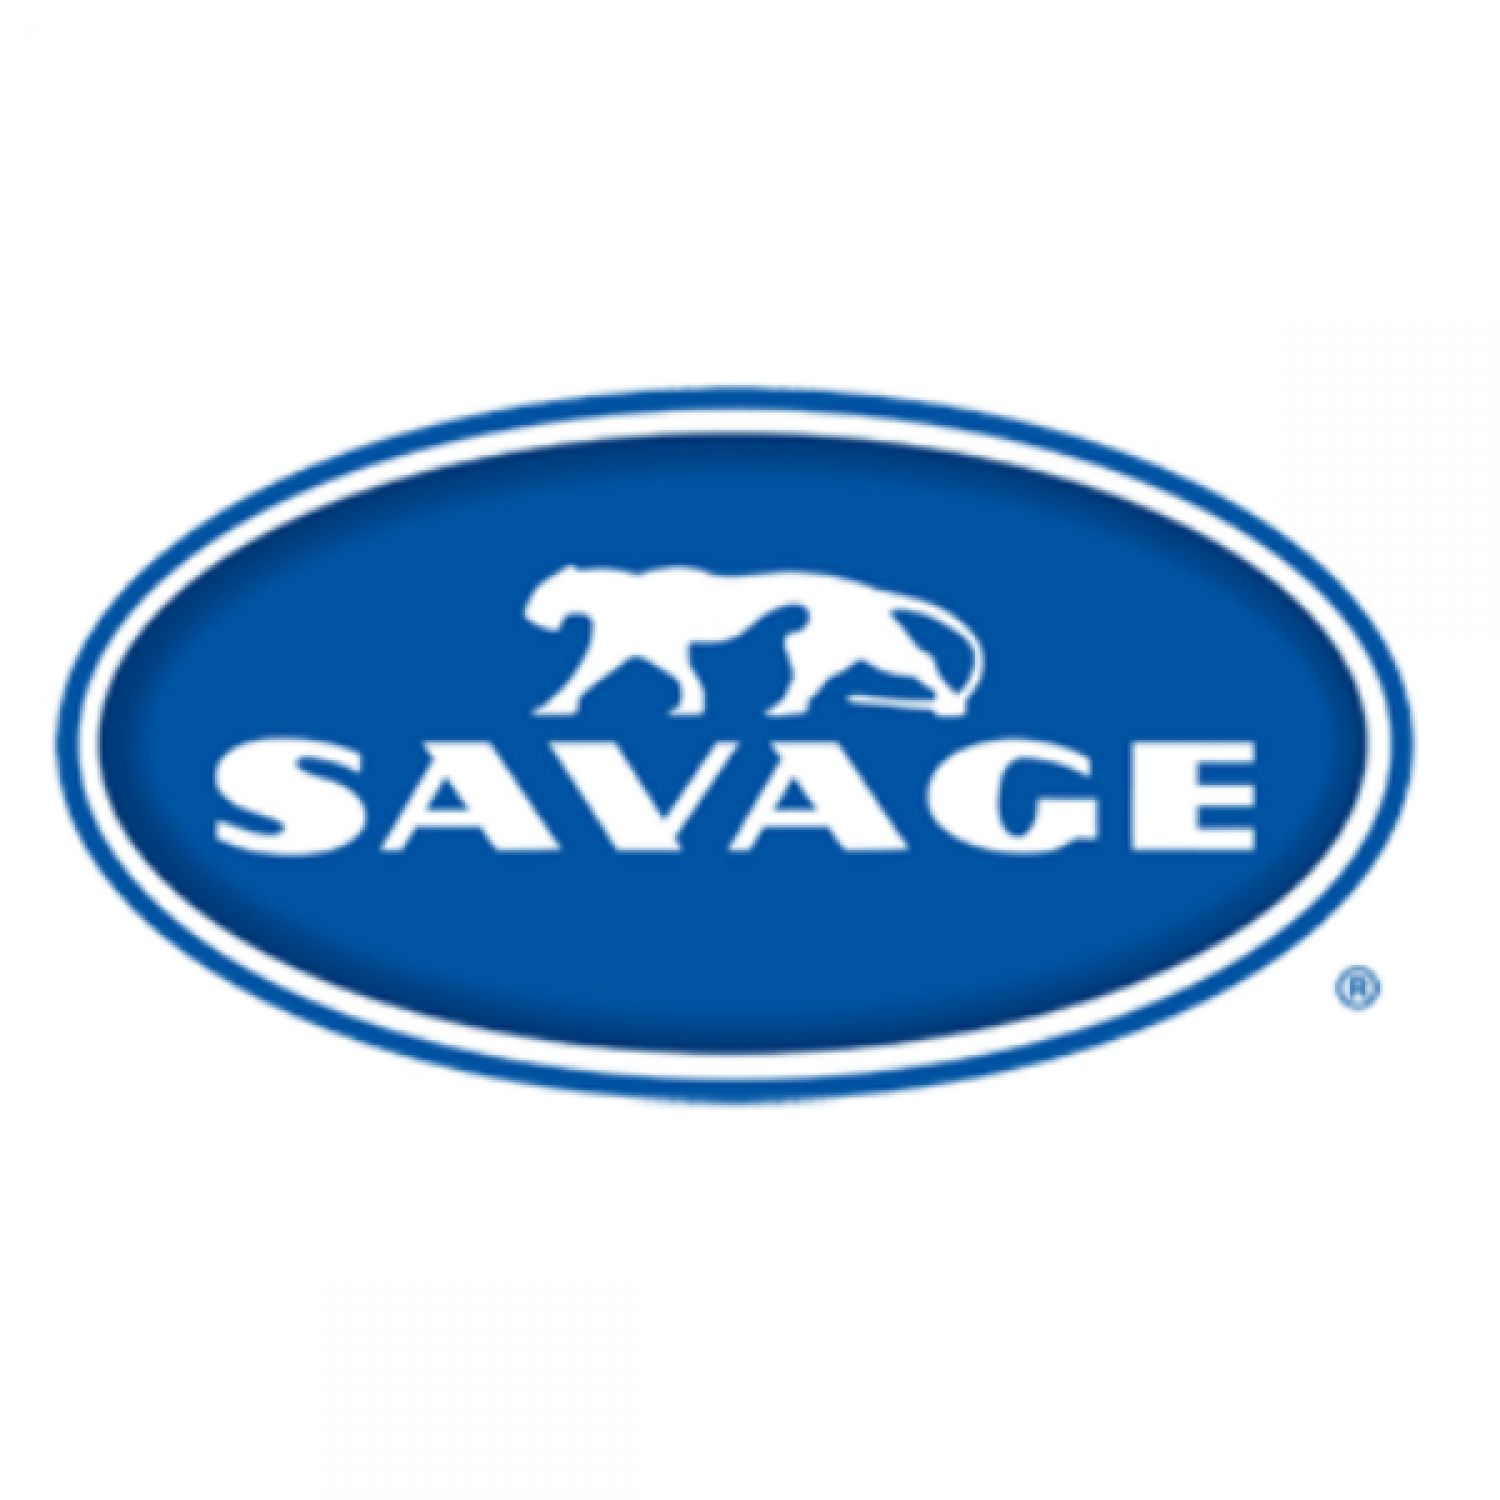 Savage Universal Introduces New Lighting & Accessories